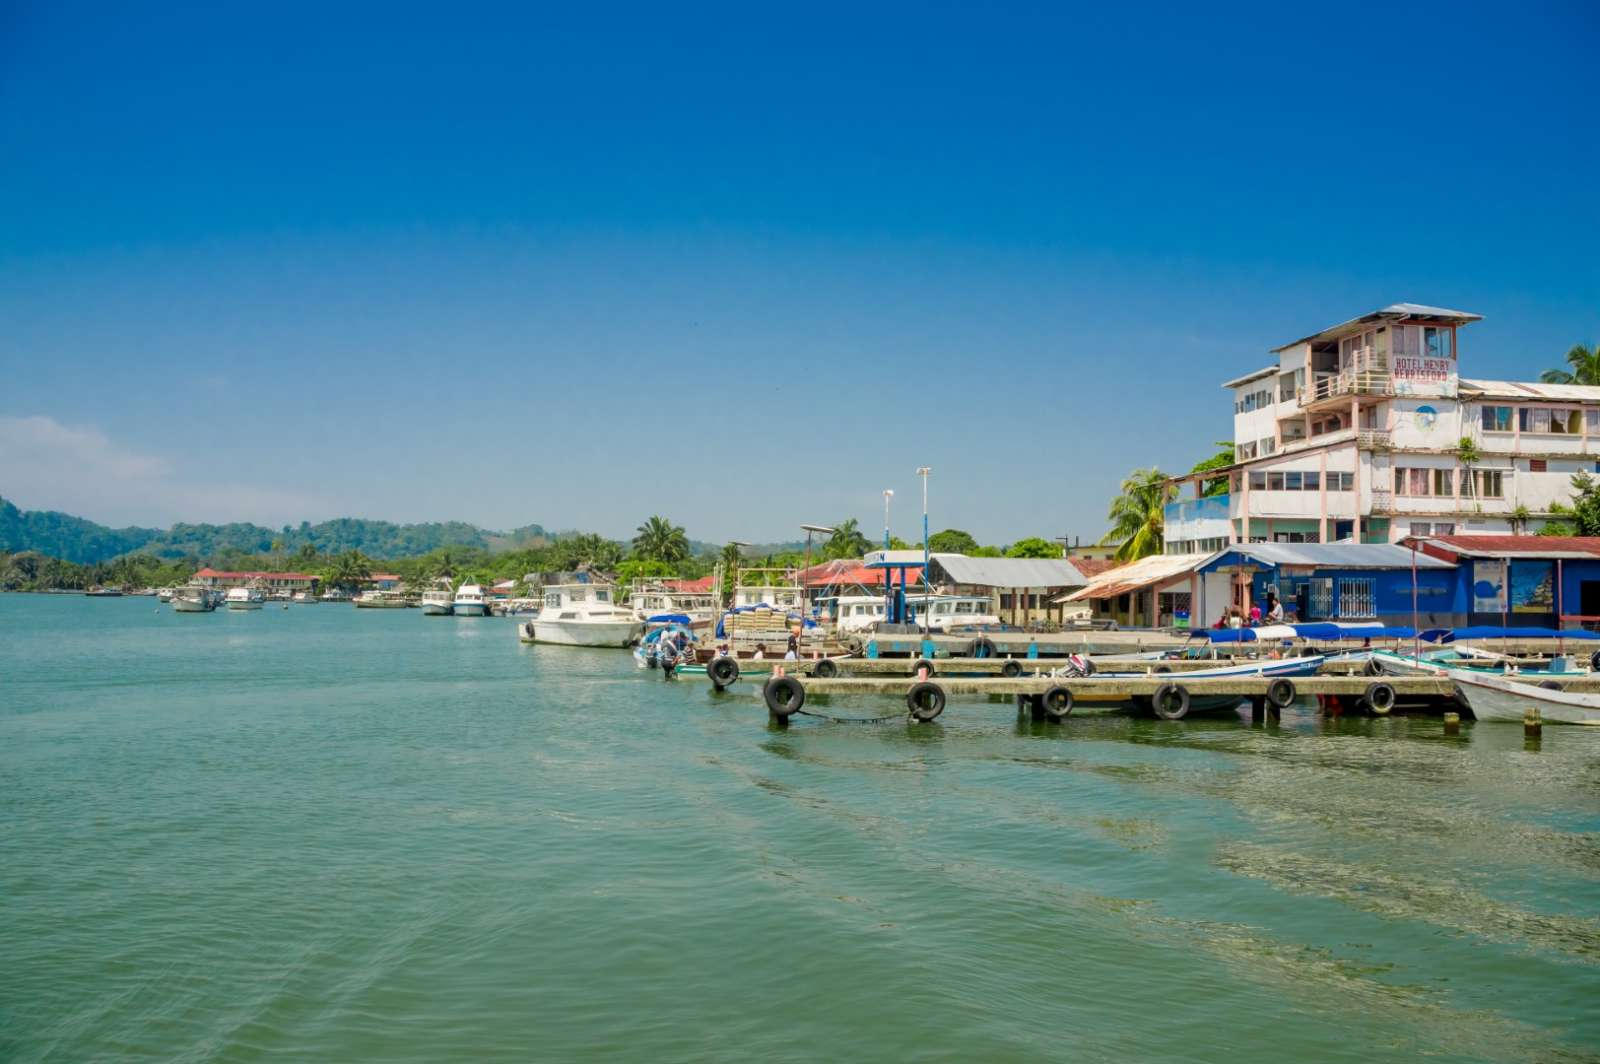 Harbour at Livingston, Guatemala